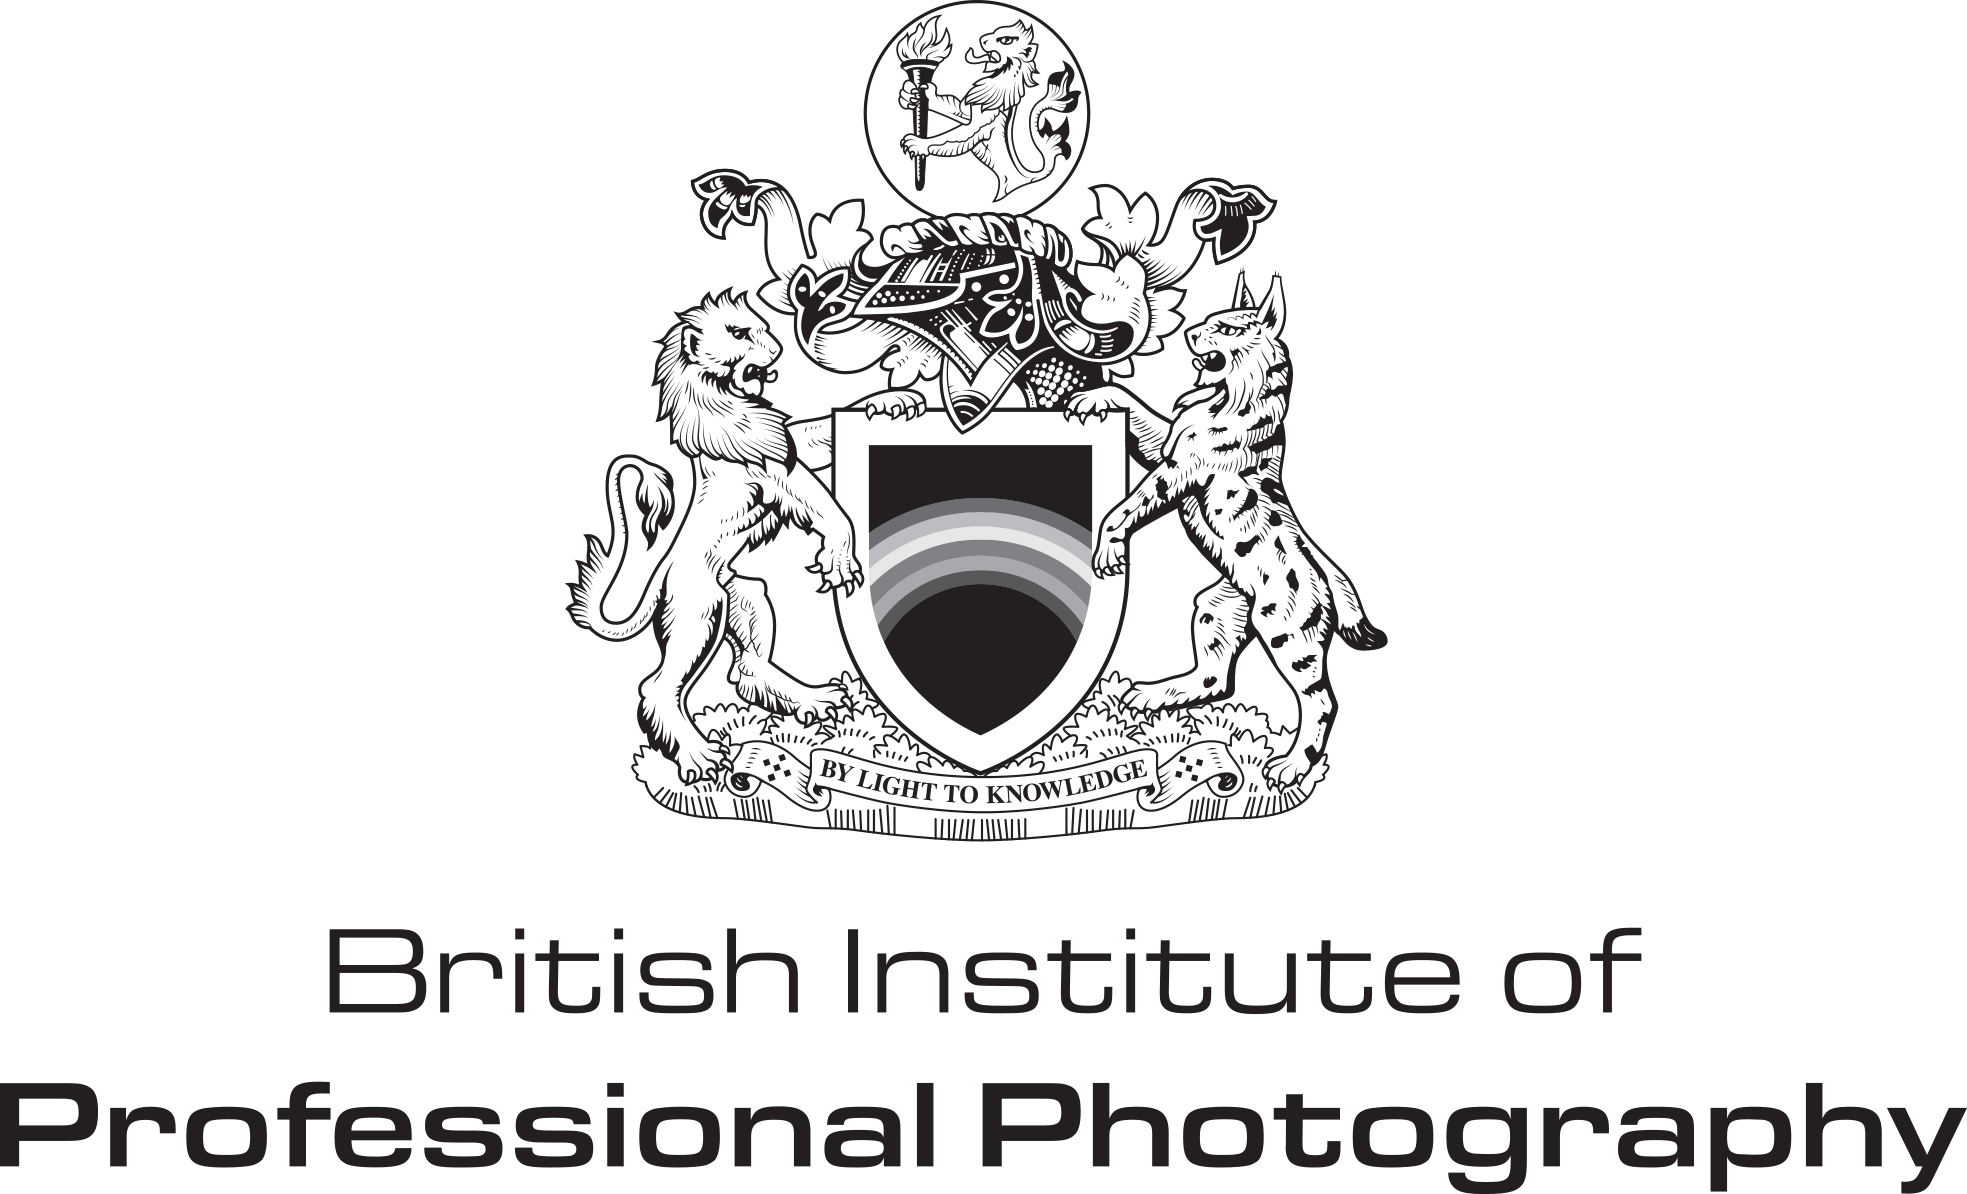 A black and white logo of the British Institute of Professional Photographers which features a lion and a leopard with a shield